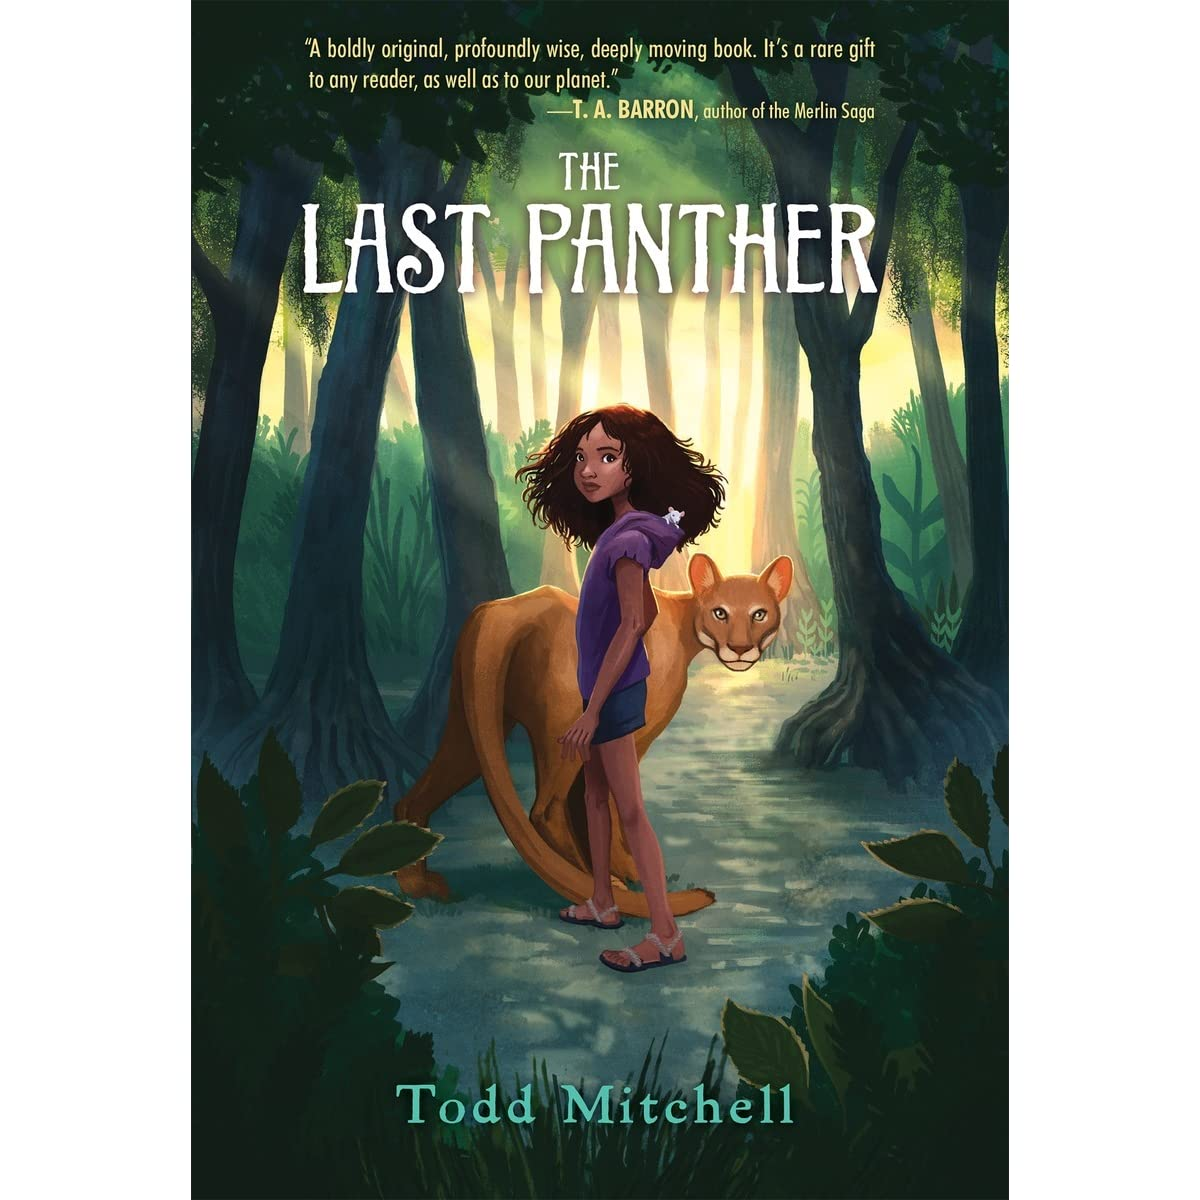 Image result for the last panther book